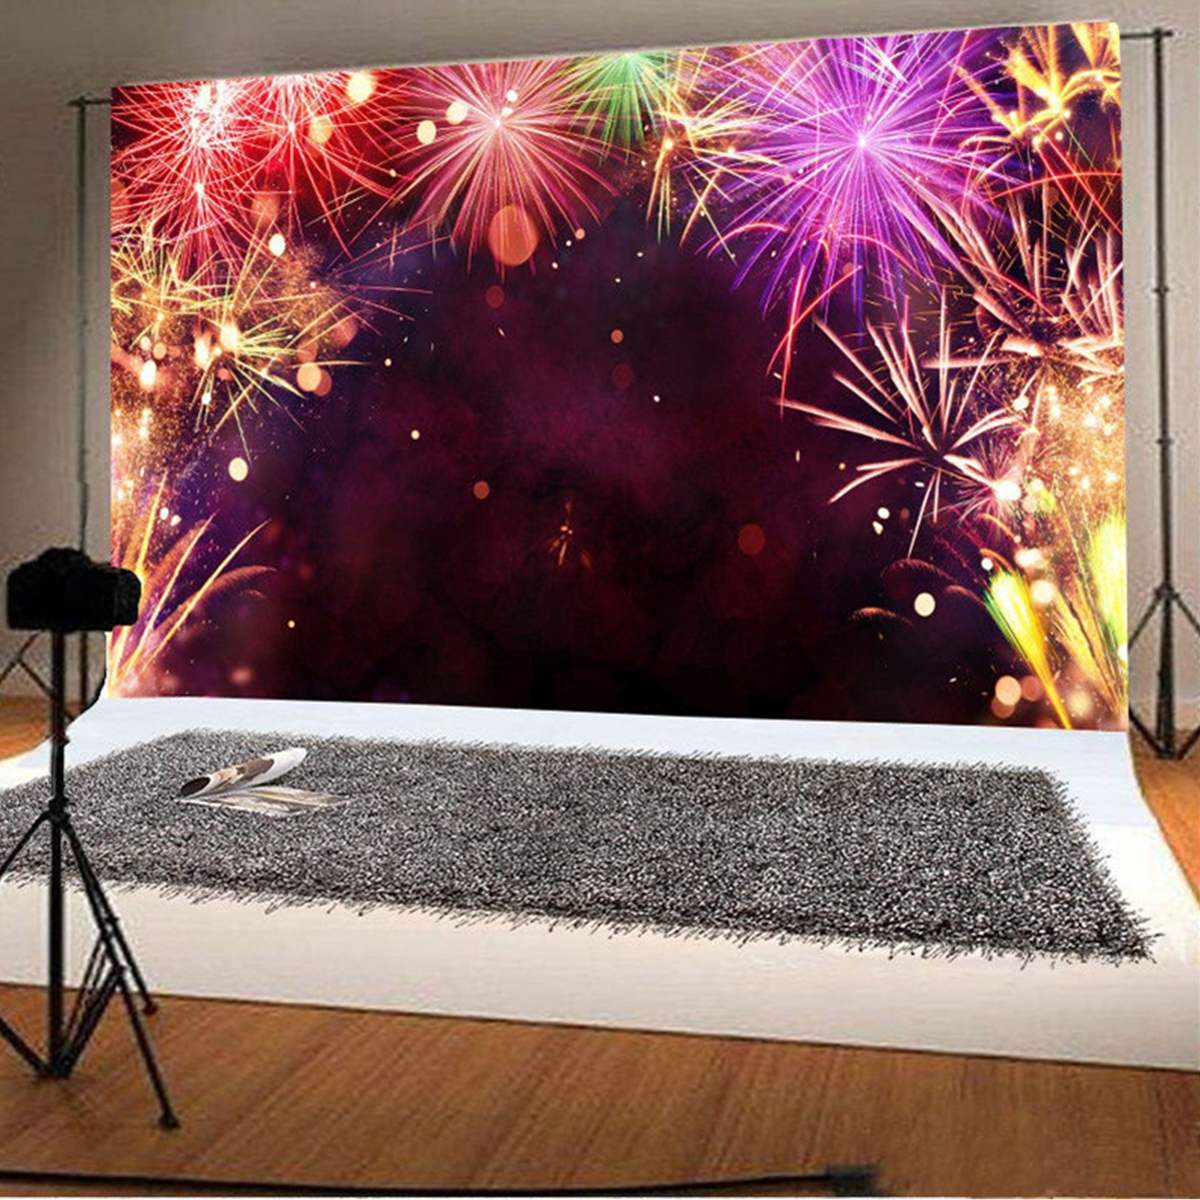 5x3FT Happy New Year Fireworks Studio Background Photography Backdrop Vinyl Prop New Arrival